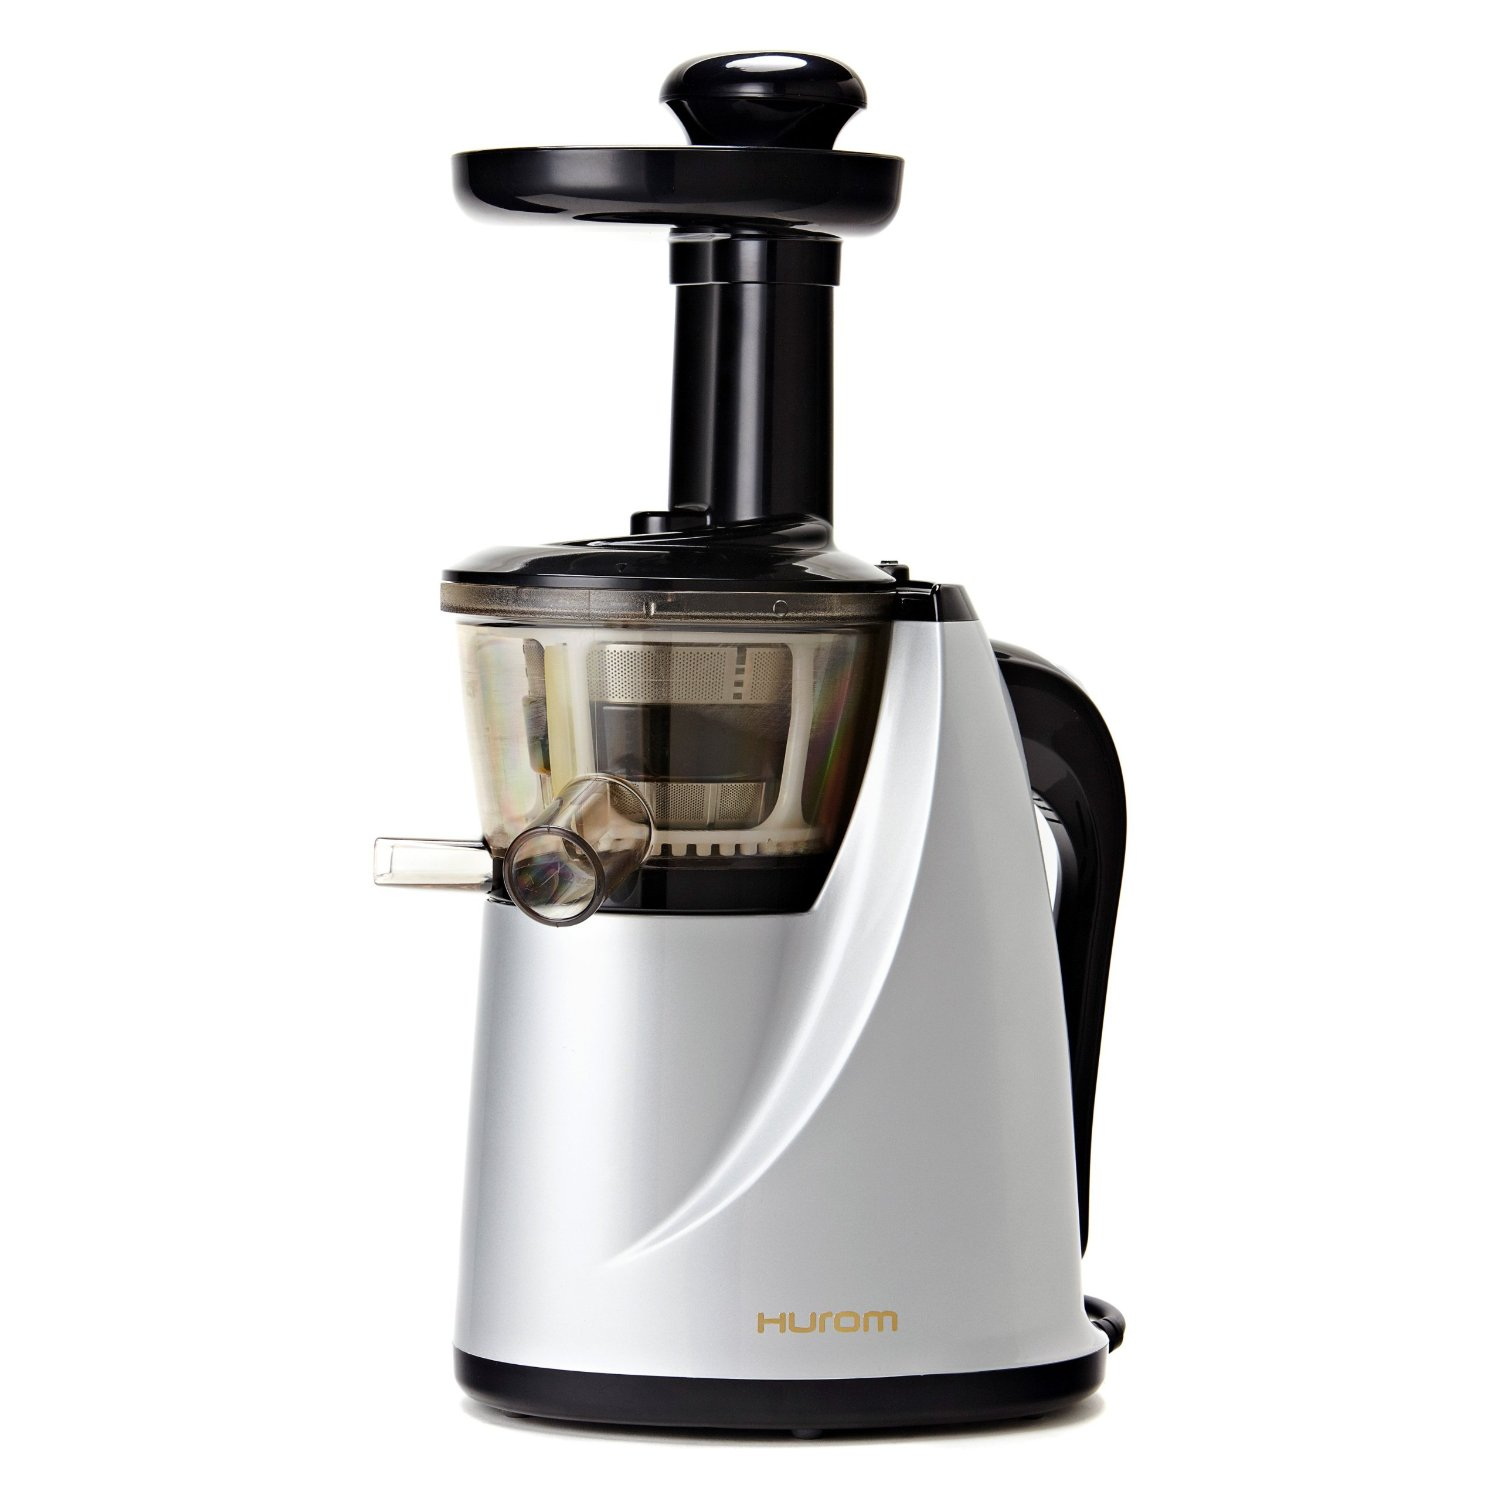 Hurom Slow Juicer Qoo10 : Hurom HU-100 Masticating Slow Juicer Review - Best Cold Press Juicers